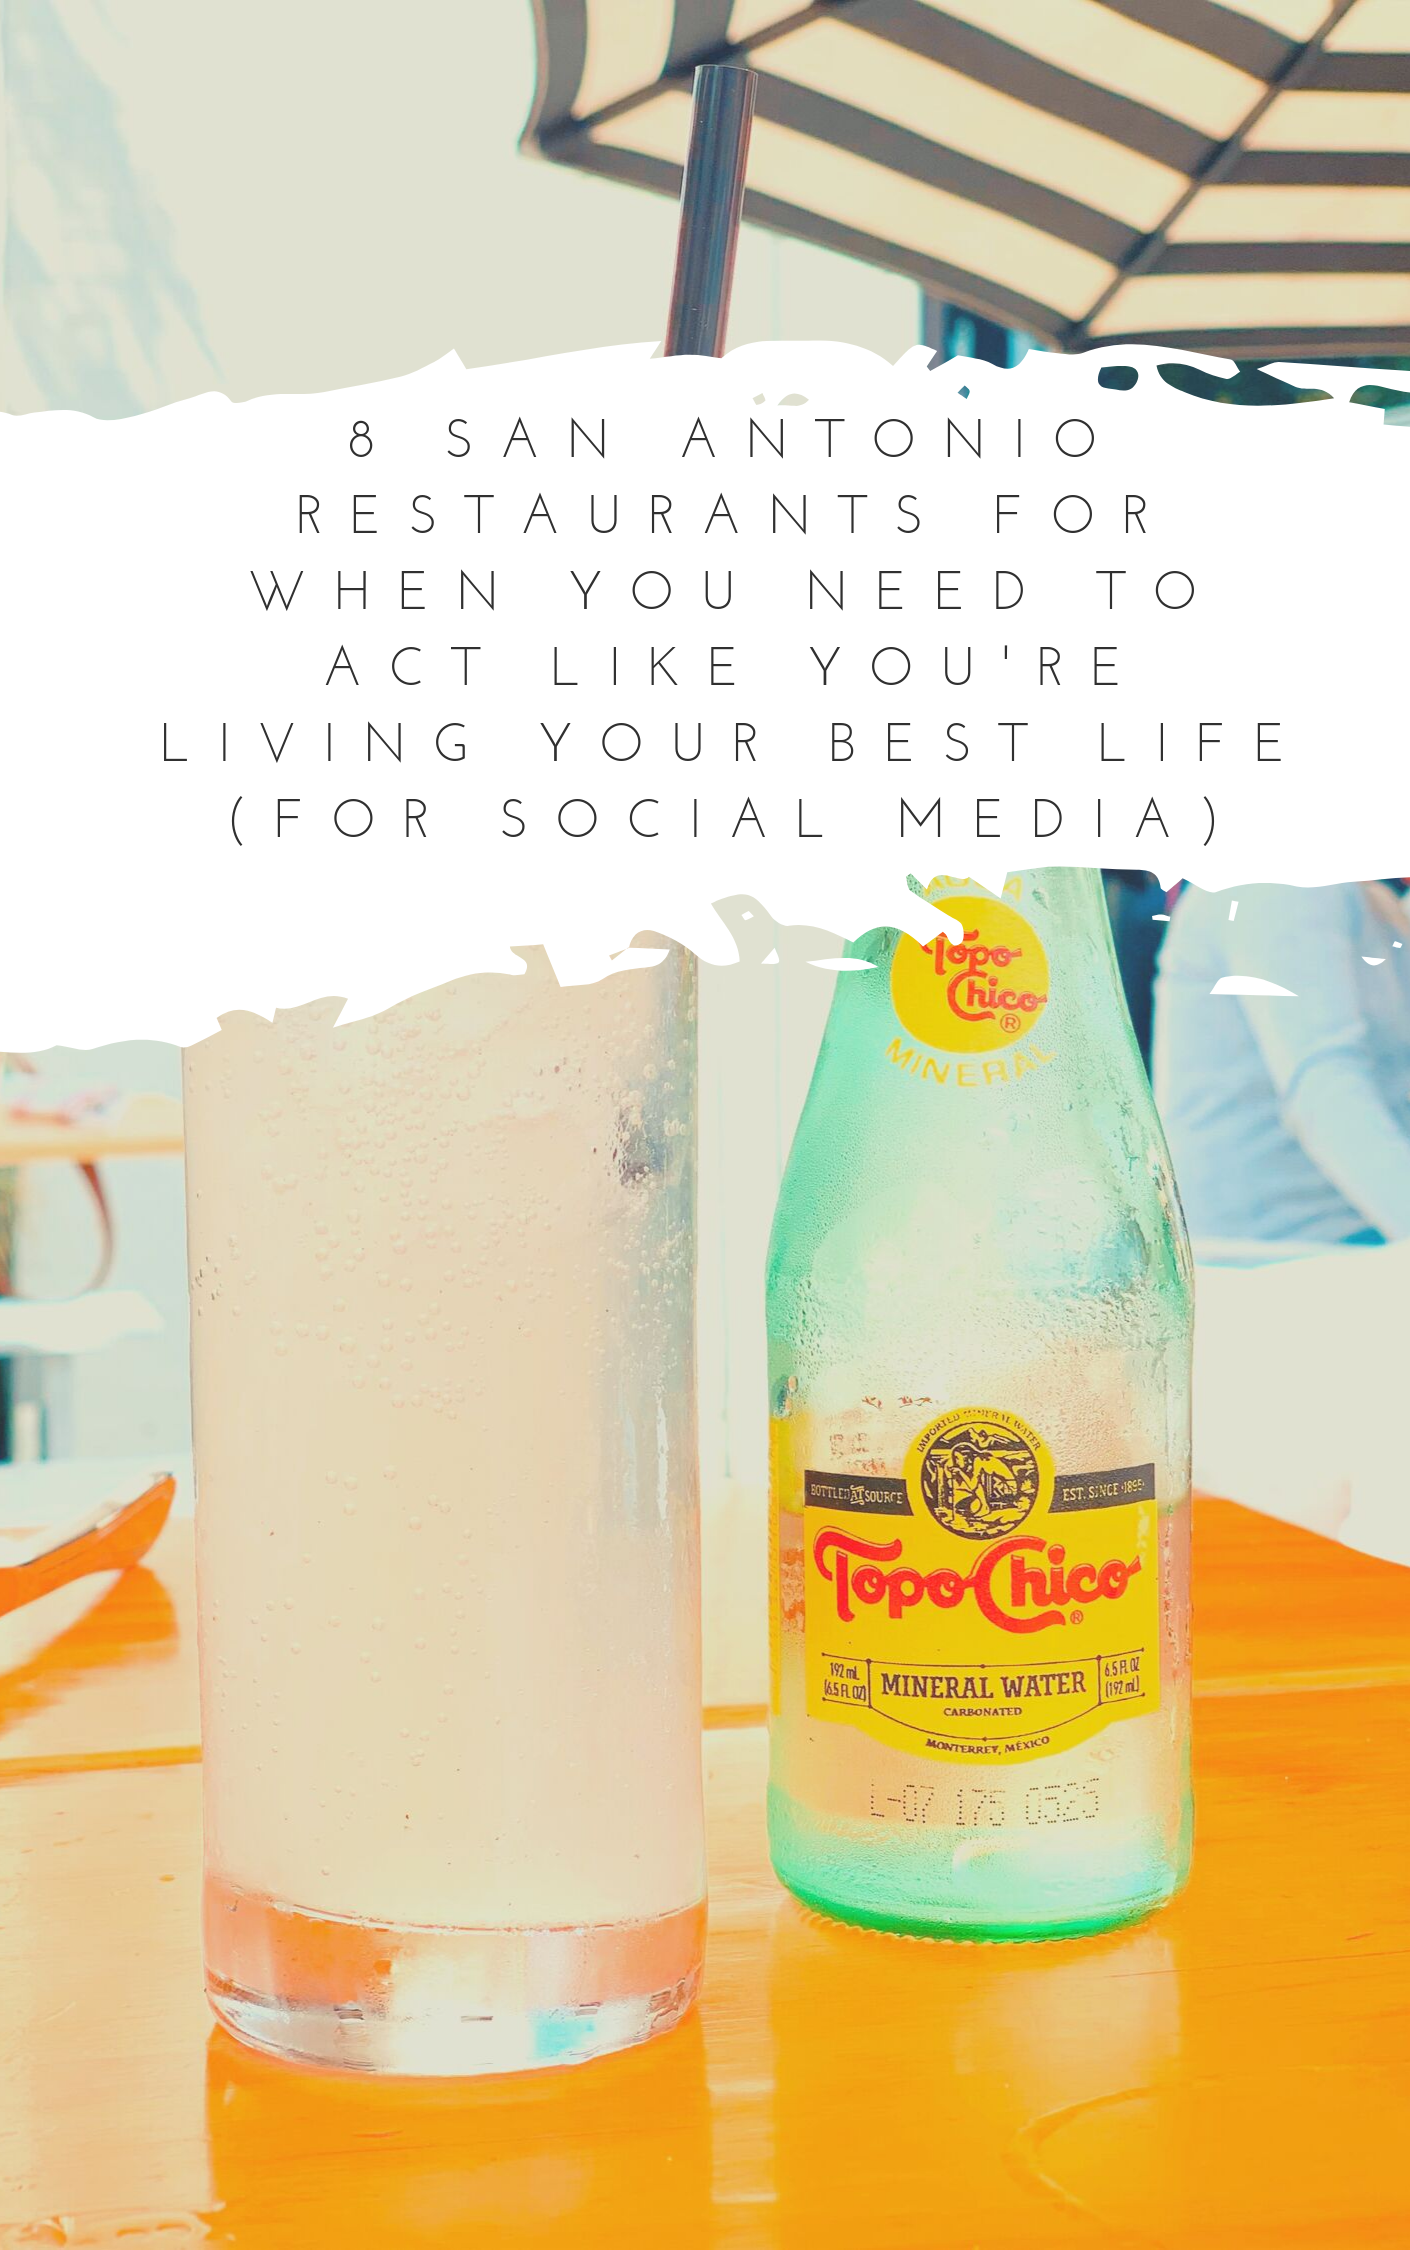 8 San Antonio Restaurants For When You Need to Act Like You're Living Your Best Life (for Social Media)